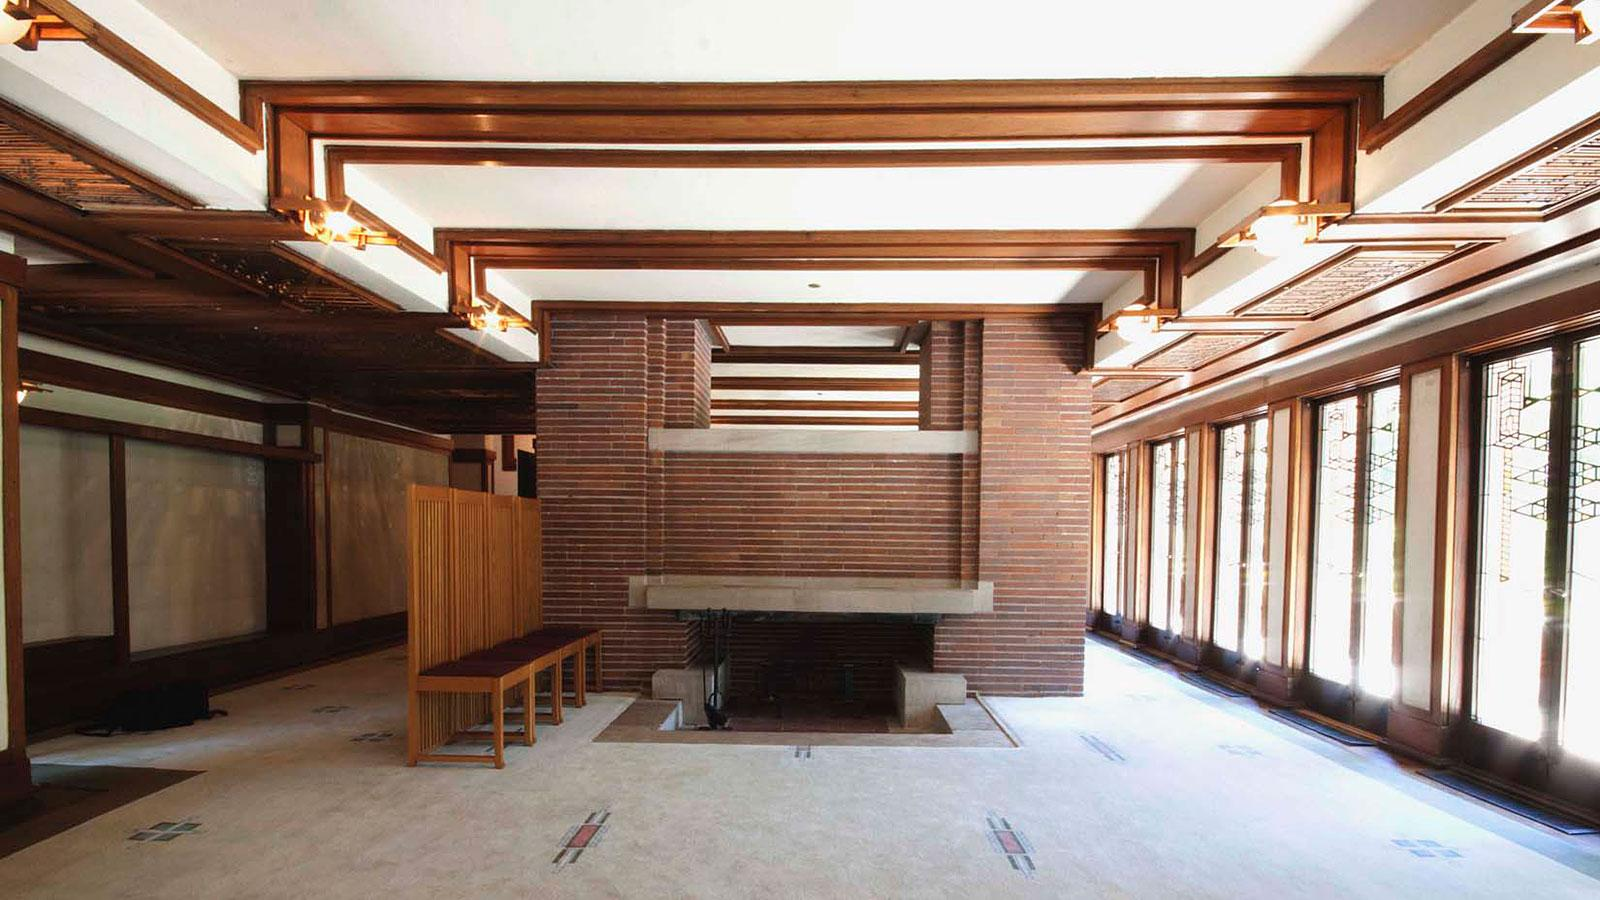 Robie house interior Frank lloyd wright the rooms interiors and decorative arts